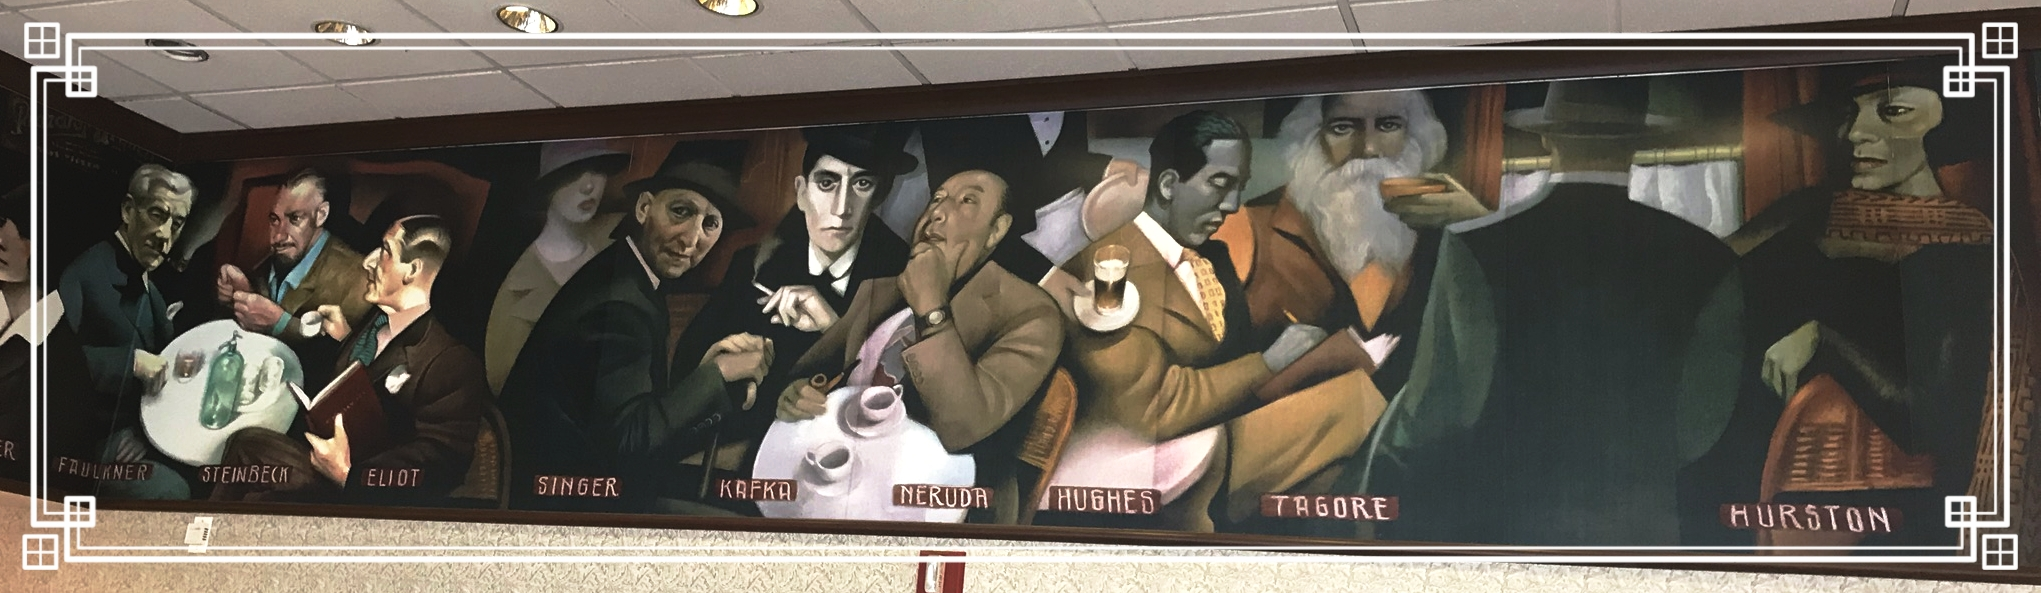 Mural in Barnes & Noble's cafe...who is the man on the right in the suit jacket and fedora?...